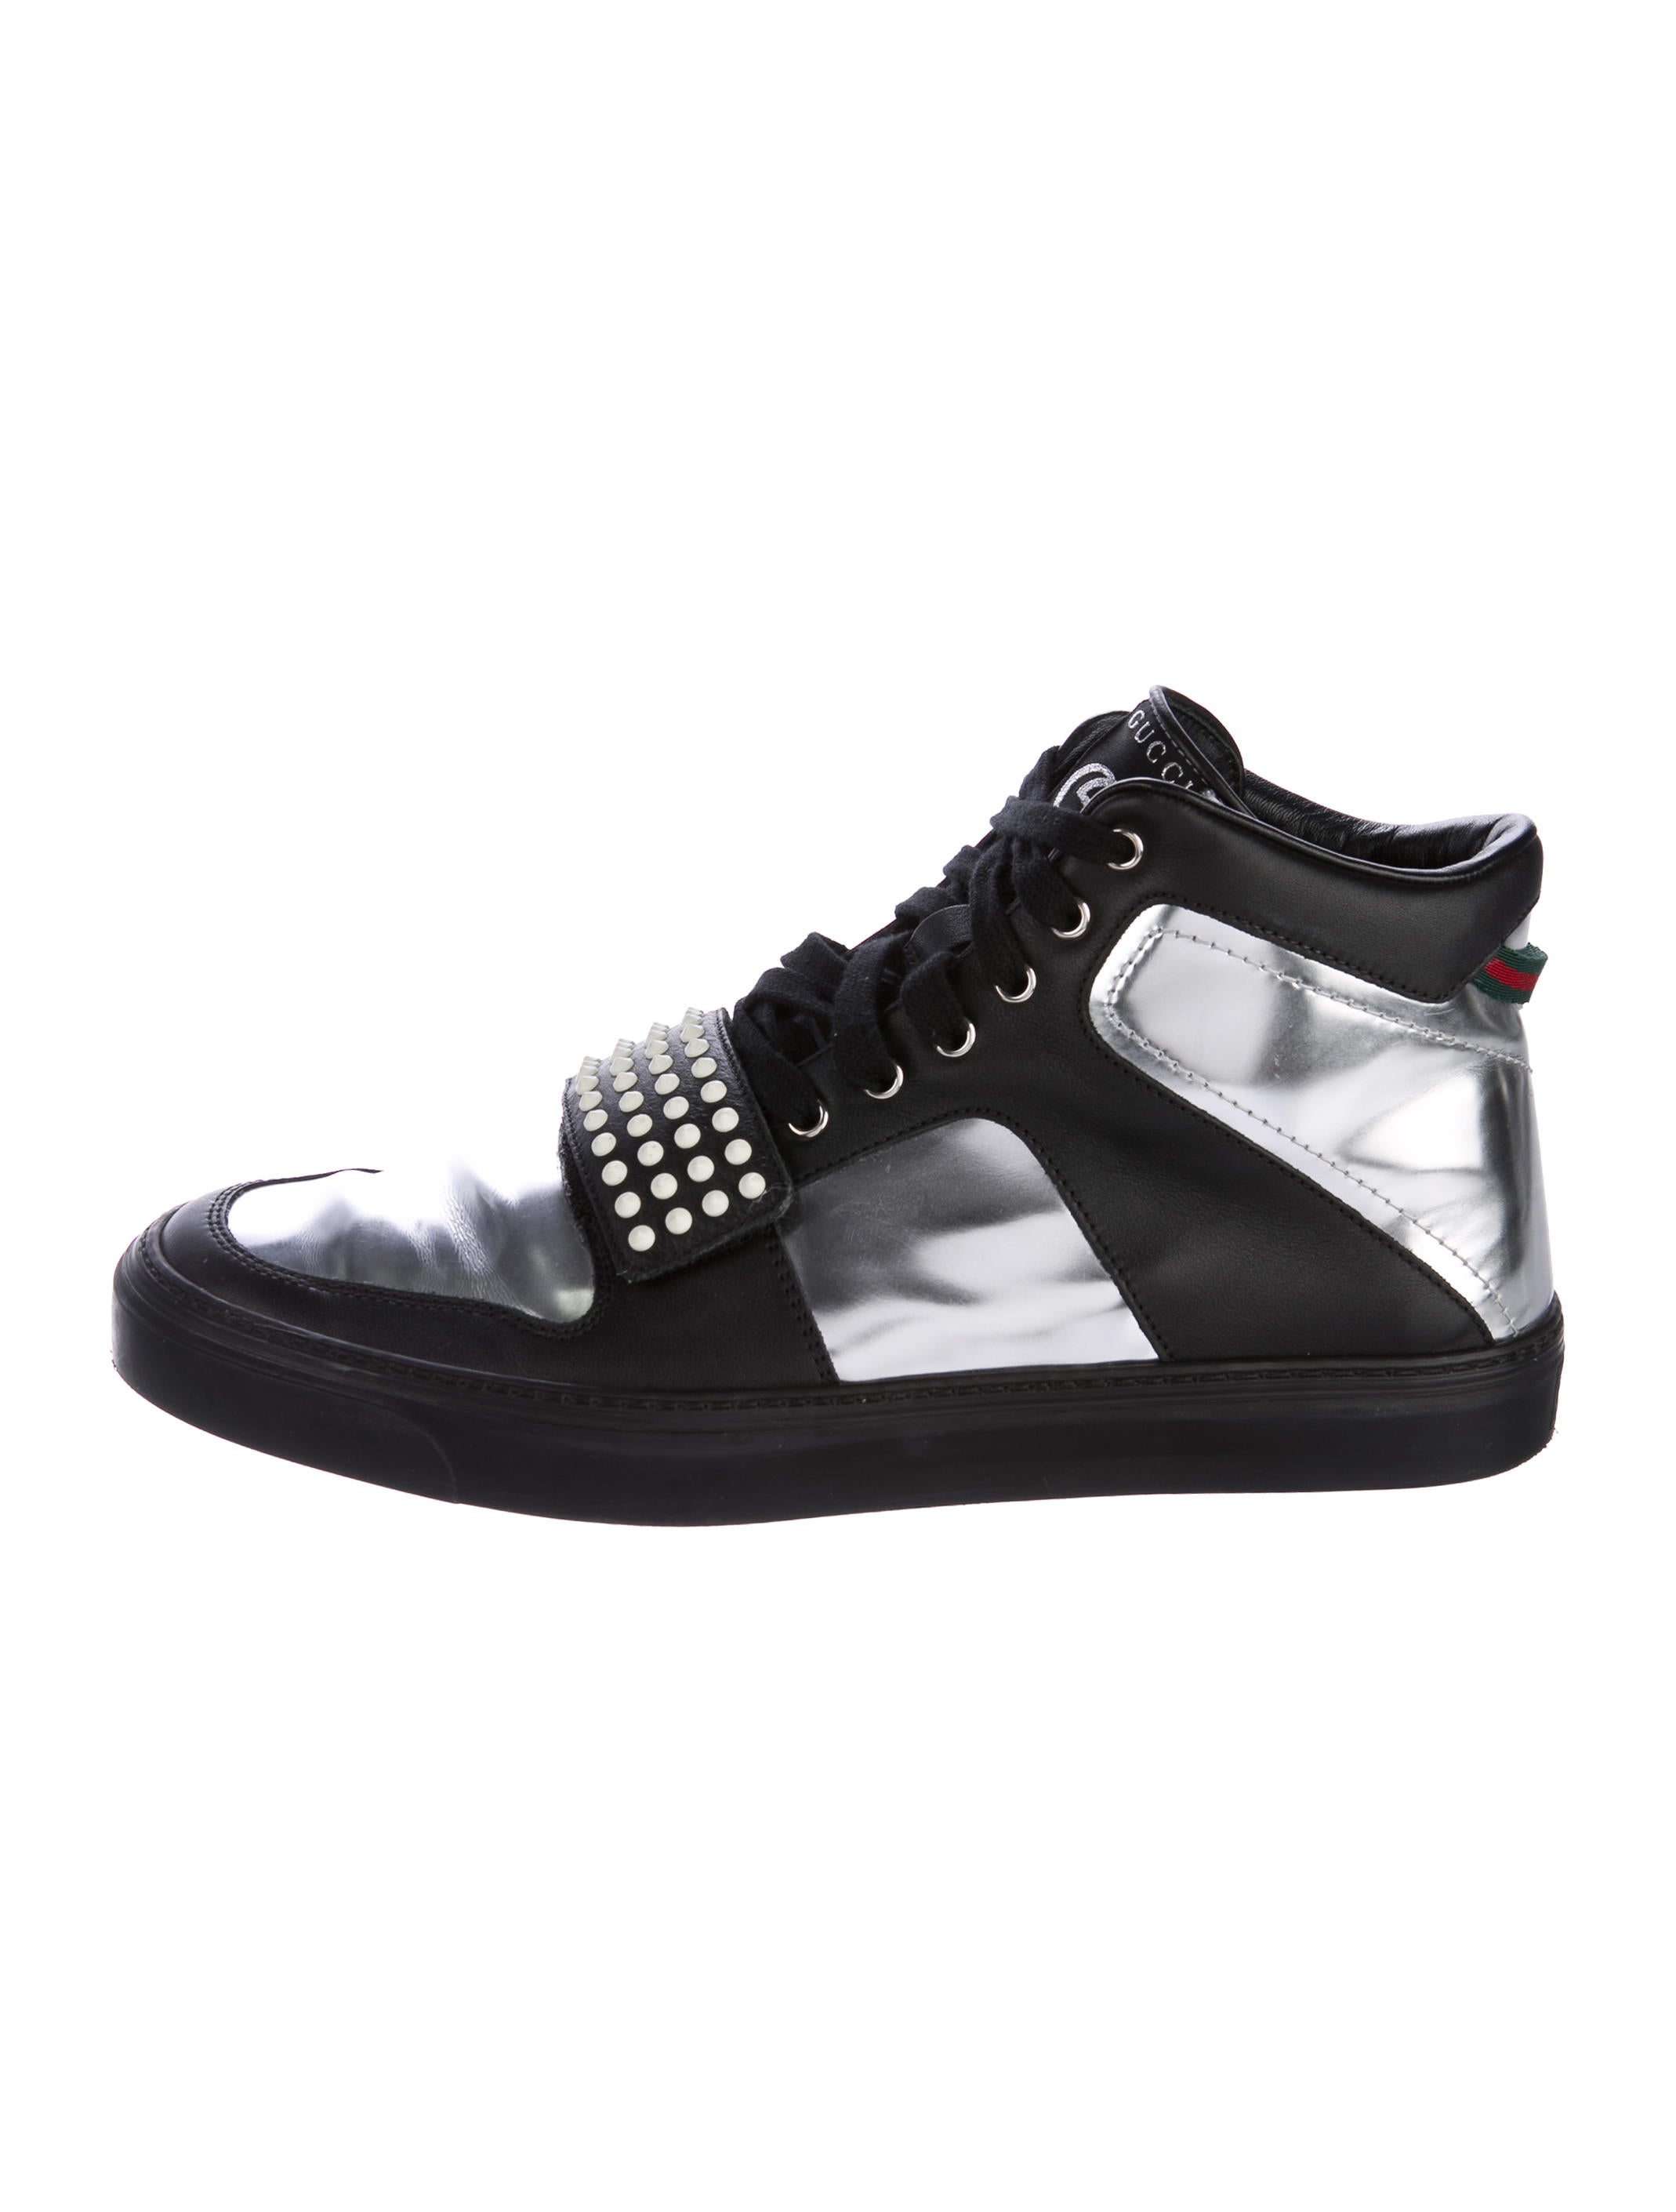 042fd6e9ea3 Gucci Patent Leather-Paneled Spiked Sneakers - Shoes - GUC170562 ...